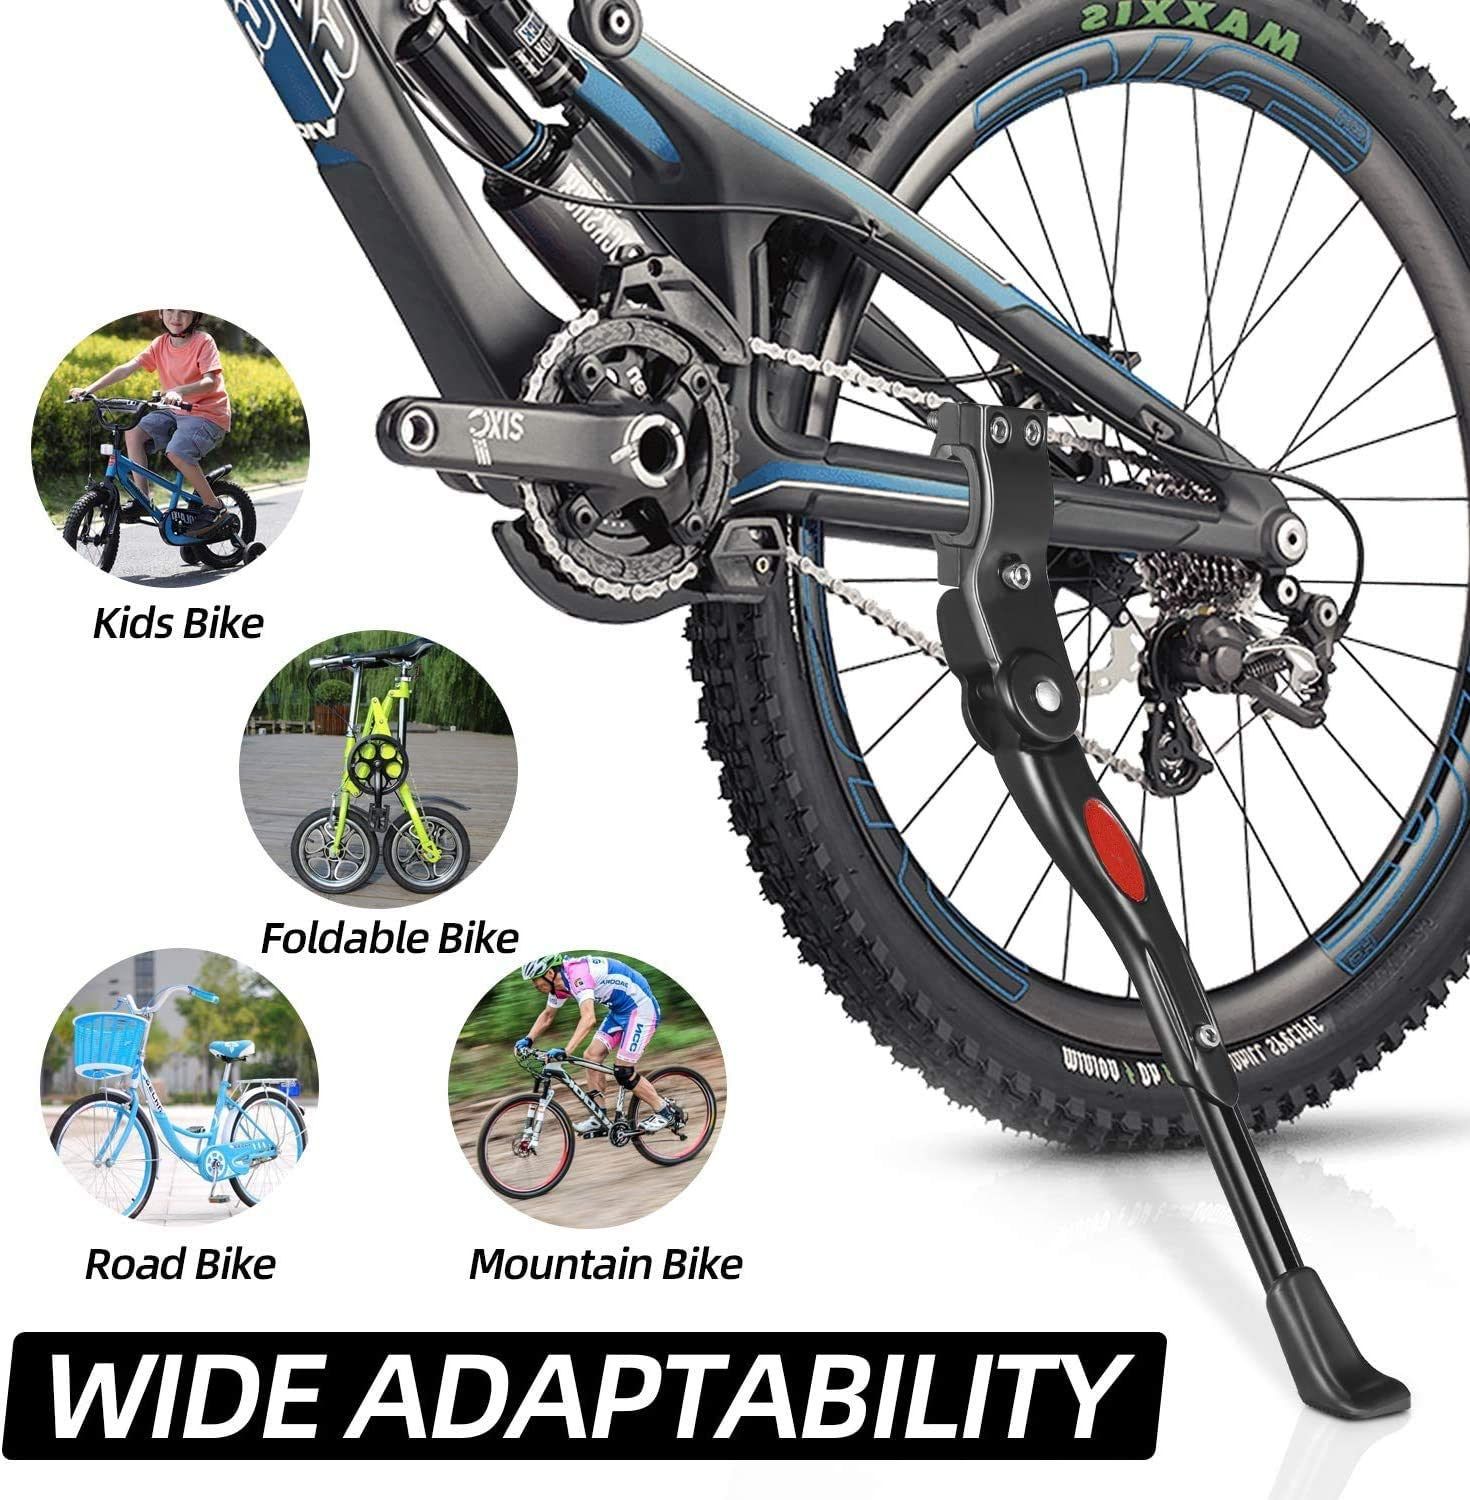 Aluminum Alloy Side Bike Kickstand Non-Slip rubber stand Suitable for Wheel 24-29 Inches Mountain Bike Foldable Bike Aprllolg Bicycle Kickstand Adjustable Bike Stand Road Bike